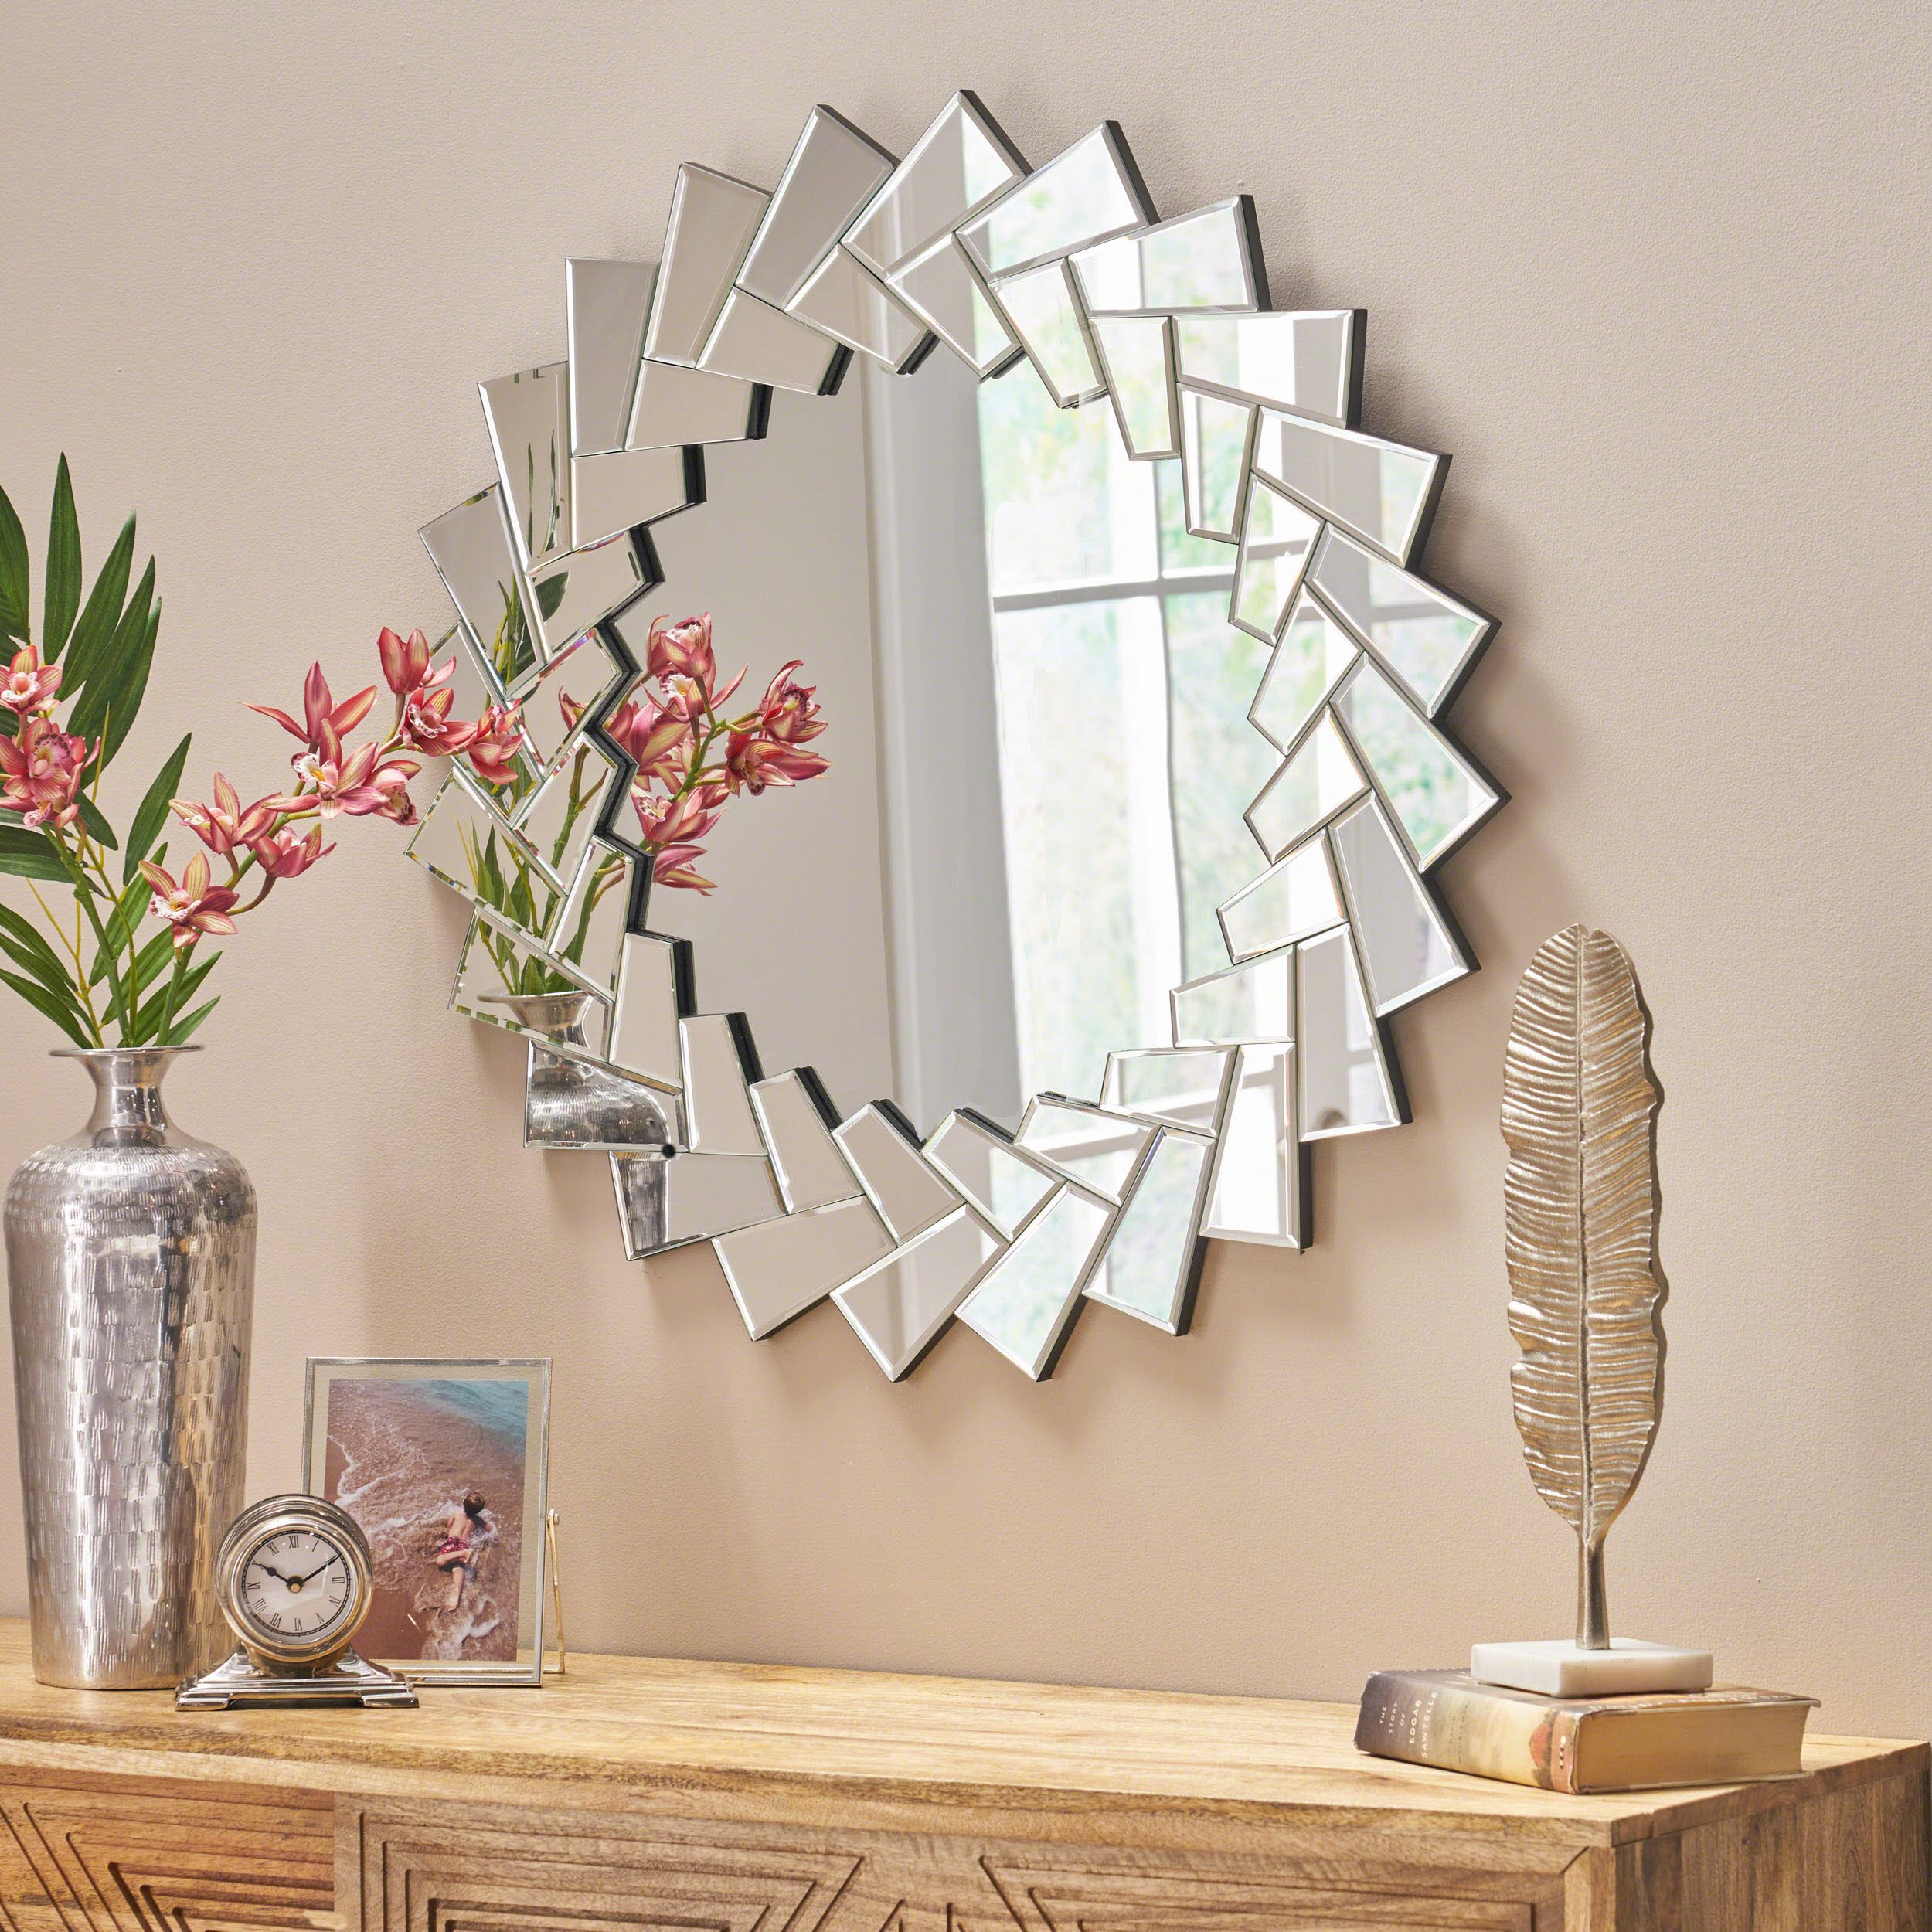 Christopher Knight Home 304281 Antares Mirror, Clear